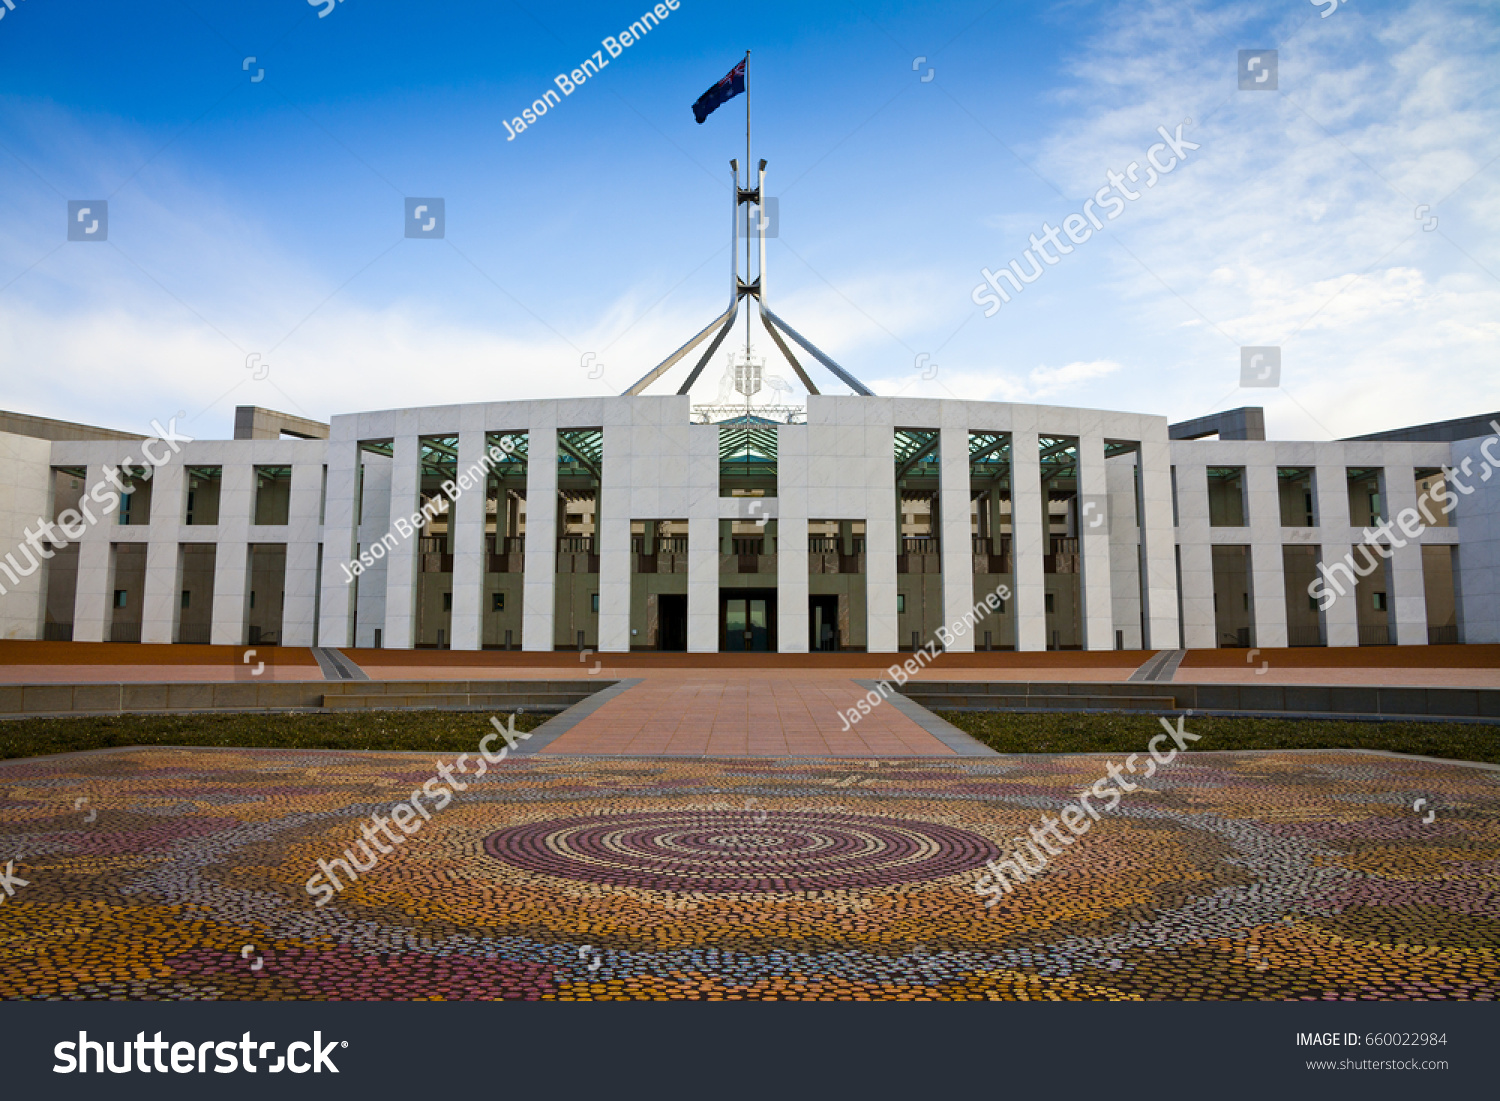 This Australian Parliament House Canberra Which Foto de stock ...